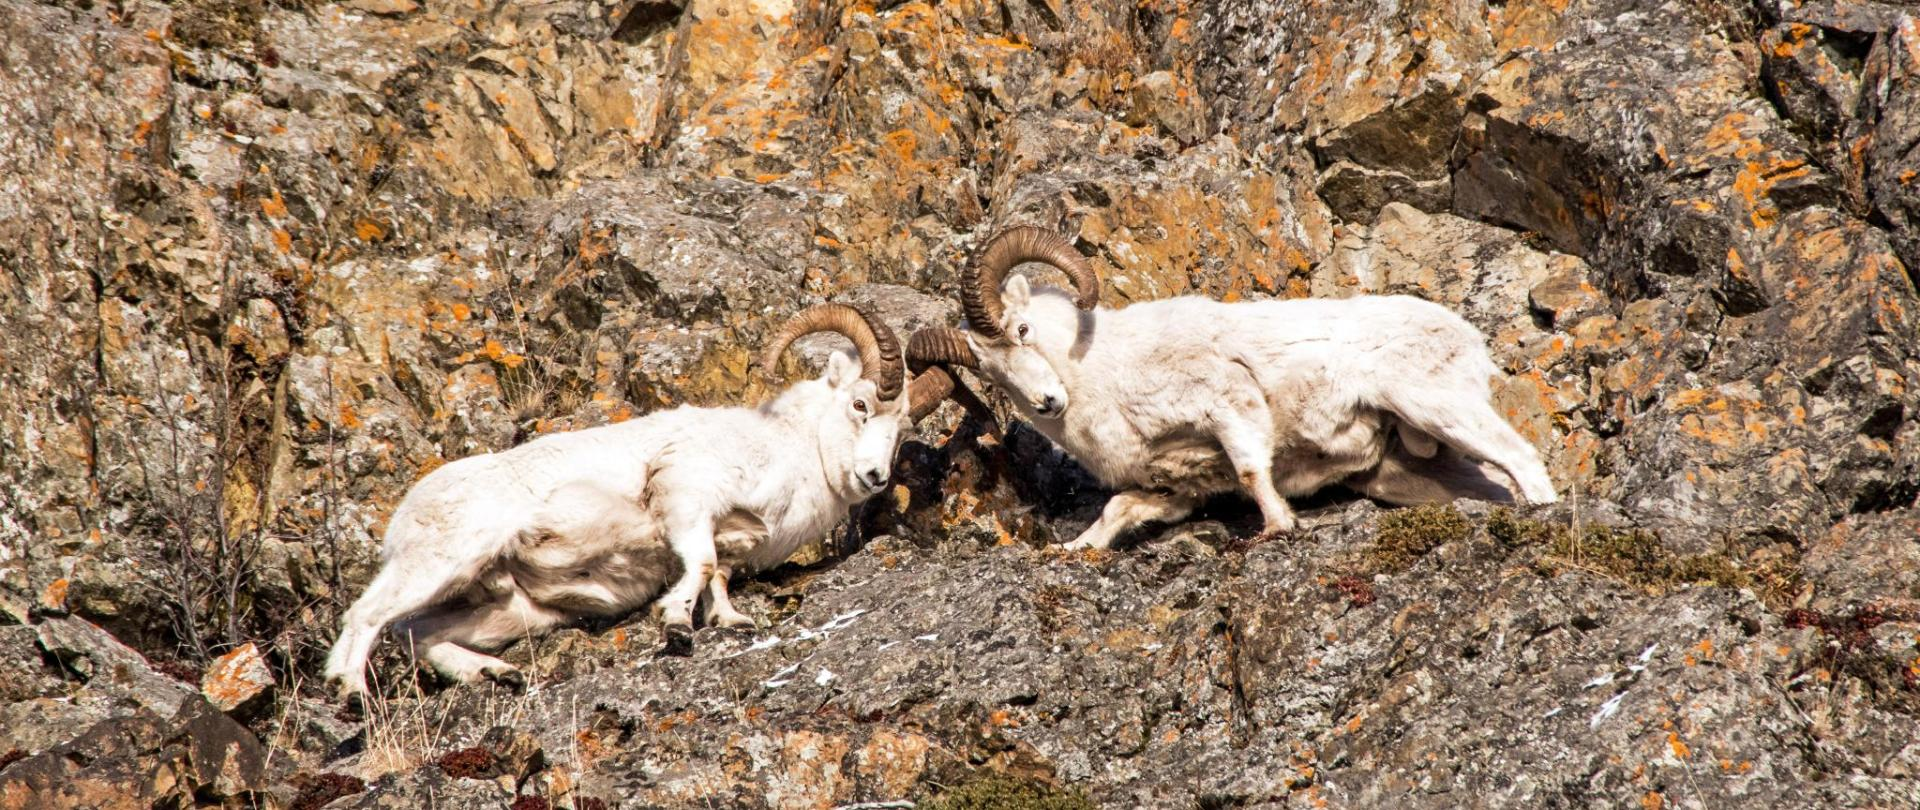 Dall Sheep Fight© Rocky Grimes AdobeStock_184483034 (2).jpeg